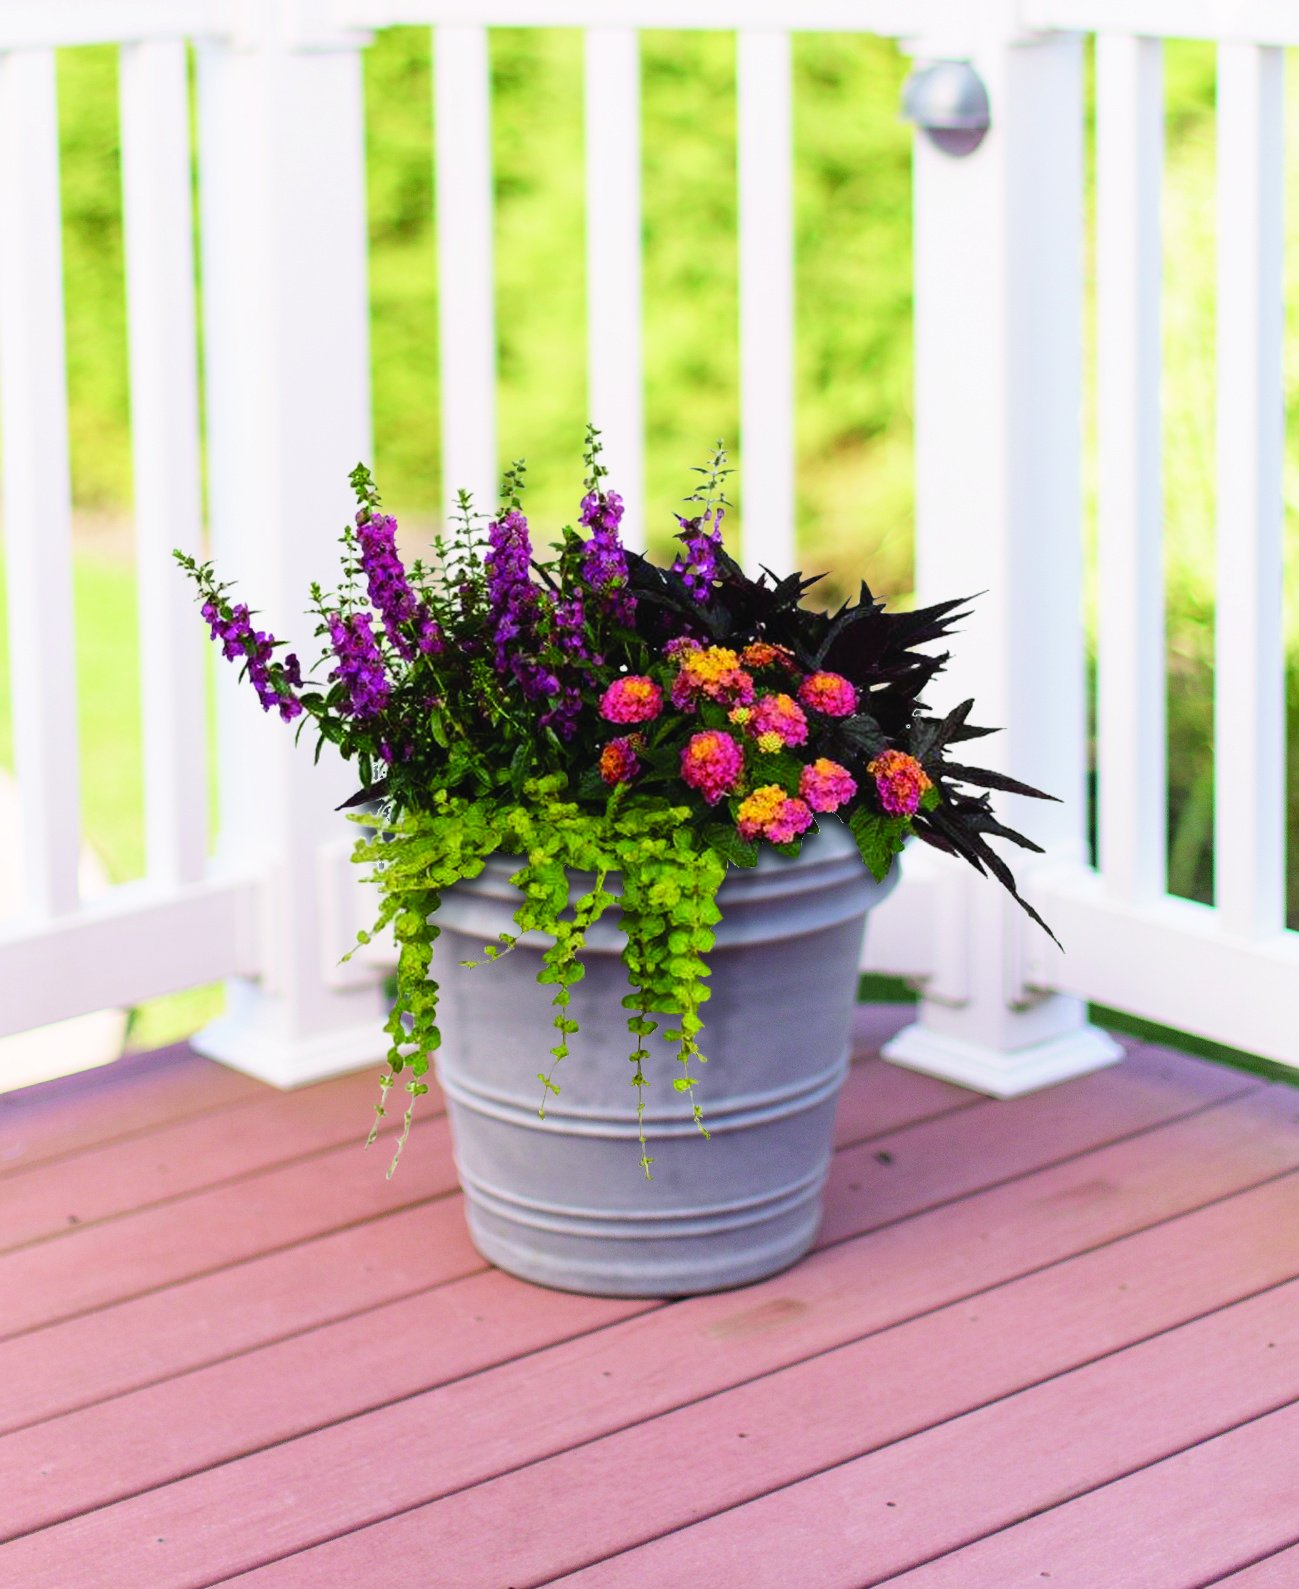 Burpee Combo 'Paradise' - Create Instant Colorful Container Gardens with Eight 4 in. pots by Burpee (Image #2)